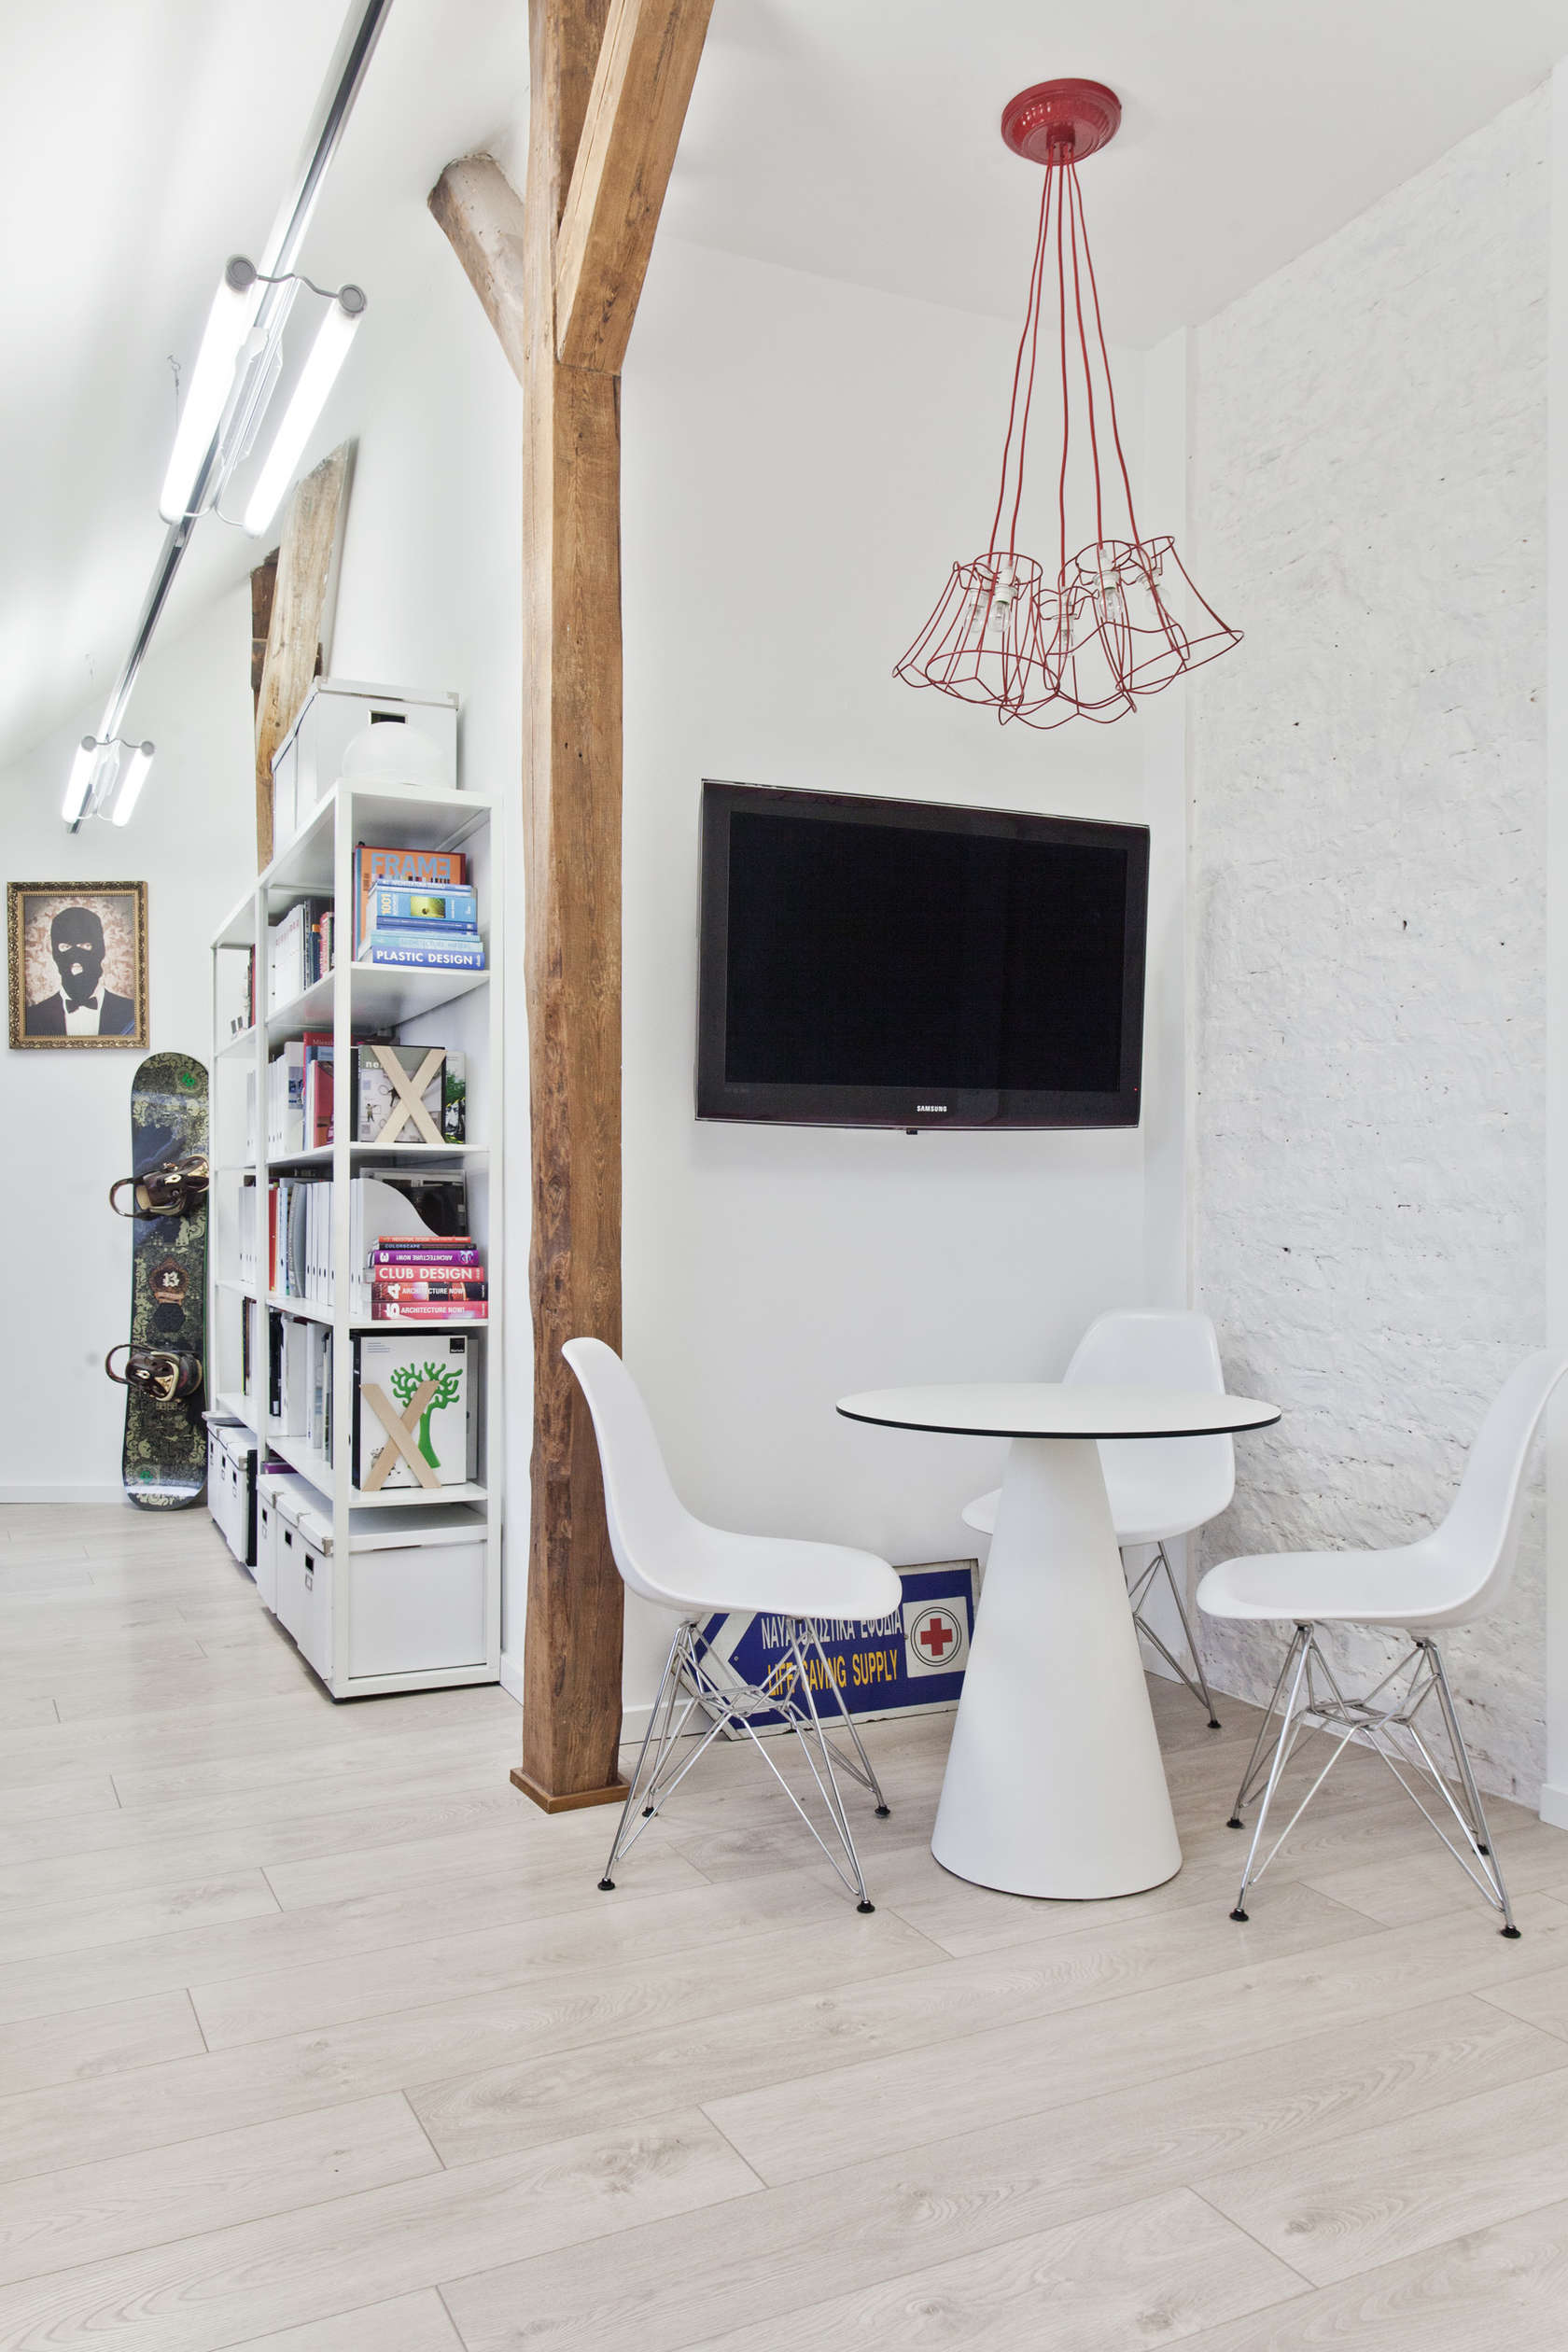 White Molded Eames Chairs - An old attic is transformed into a gorgeous apartment